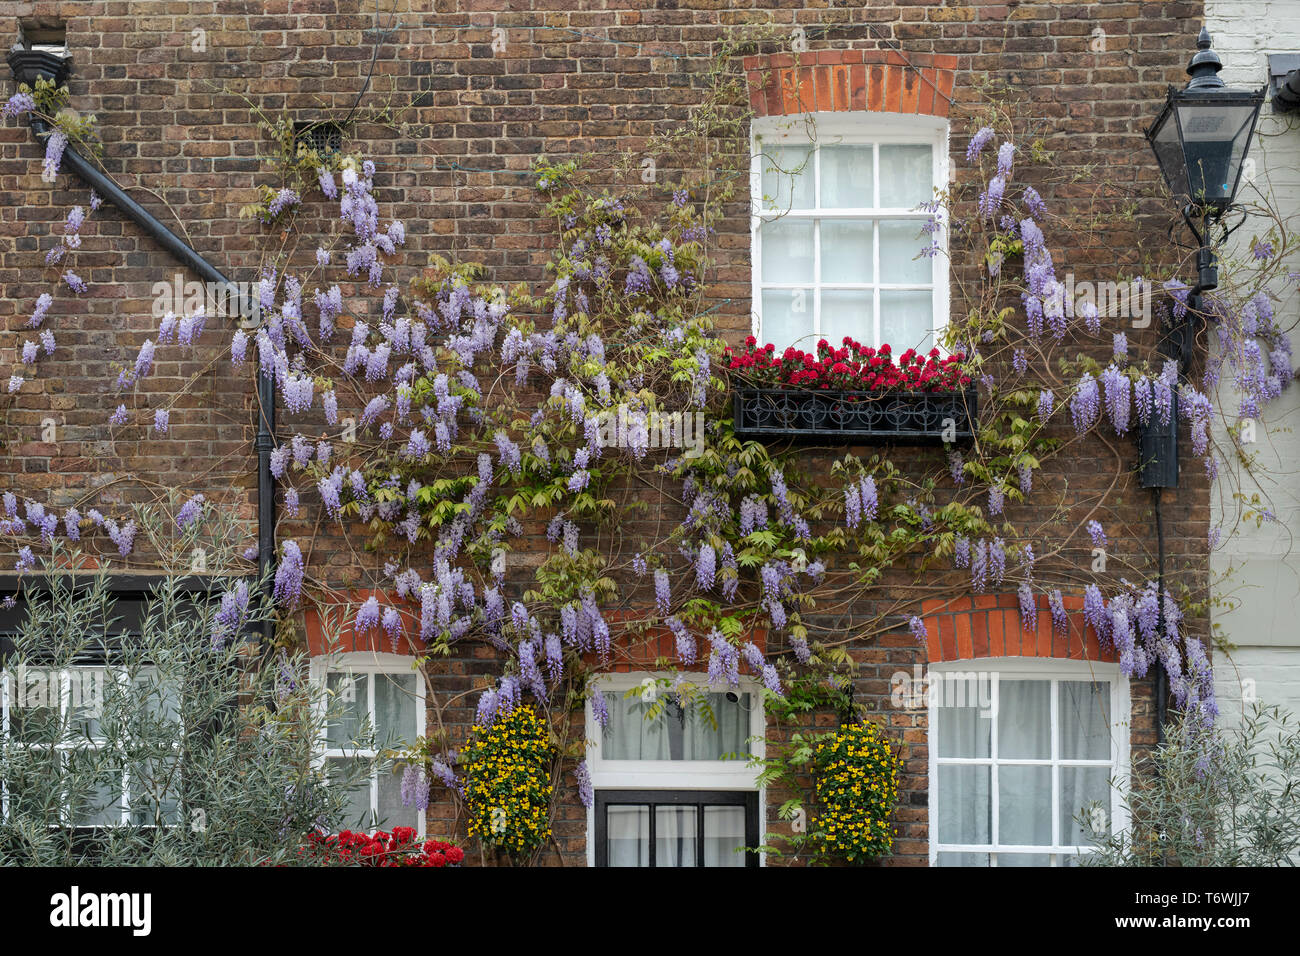 Wisteria and window boxes on the front of a house in Bathurst Mews, Hyde Park Estate, Bayswater, London, England - Stock Image